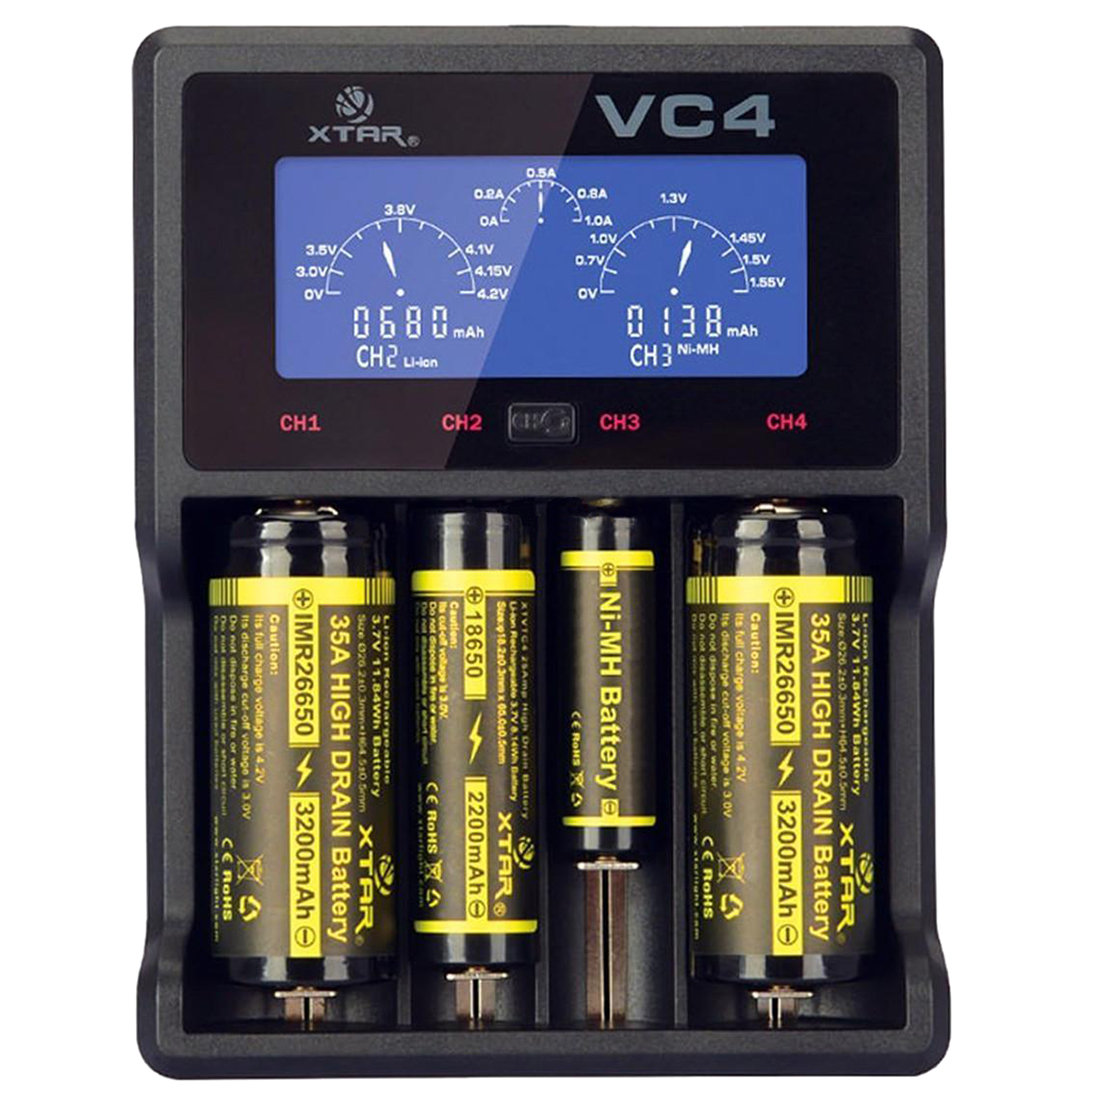 XTAR VC4 Universal LCD Screen USB Battery Charger 18650 26650 32650 14500 AA AAA LD489 Best Price Top Quality xtar vc4 four slot usb lithium ion battery charger